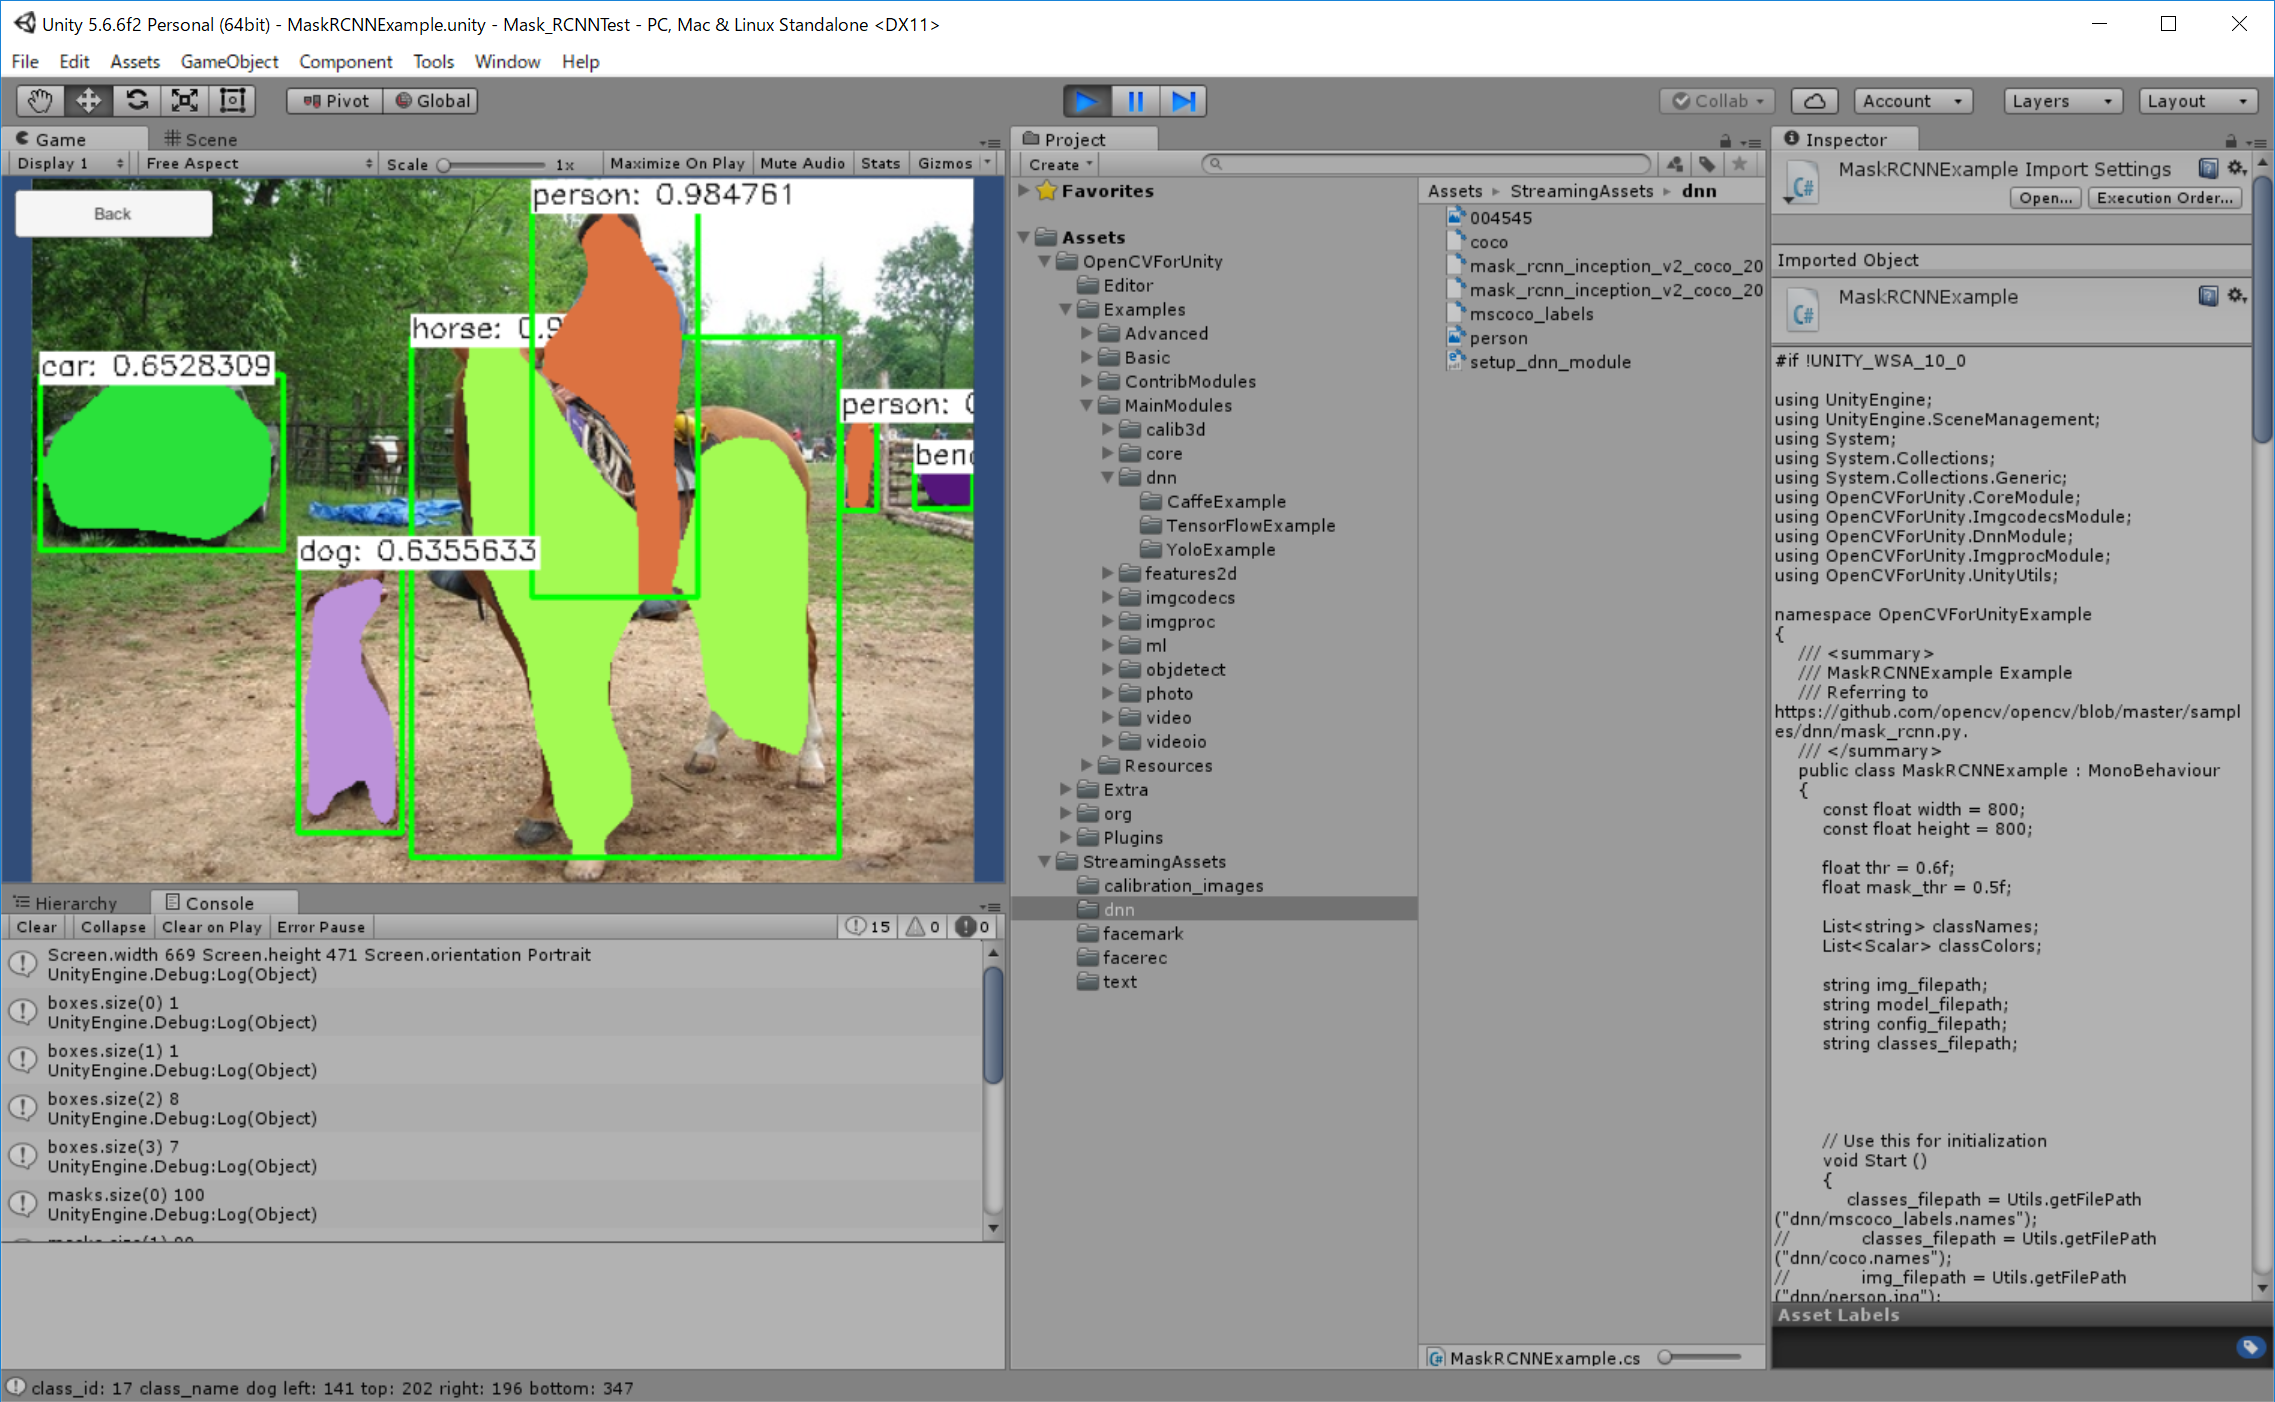 RELEASED] OpenCV for Unity | Page 40 - Unity Forum